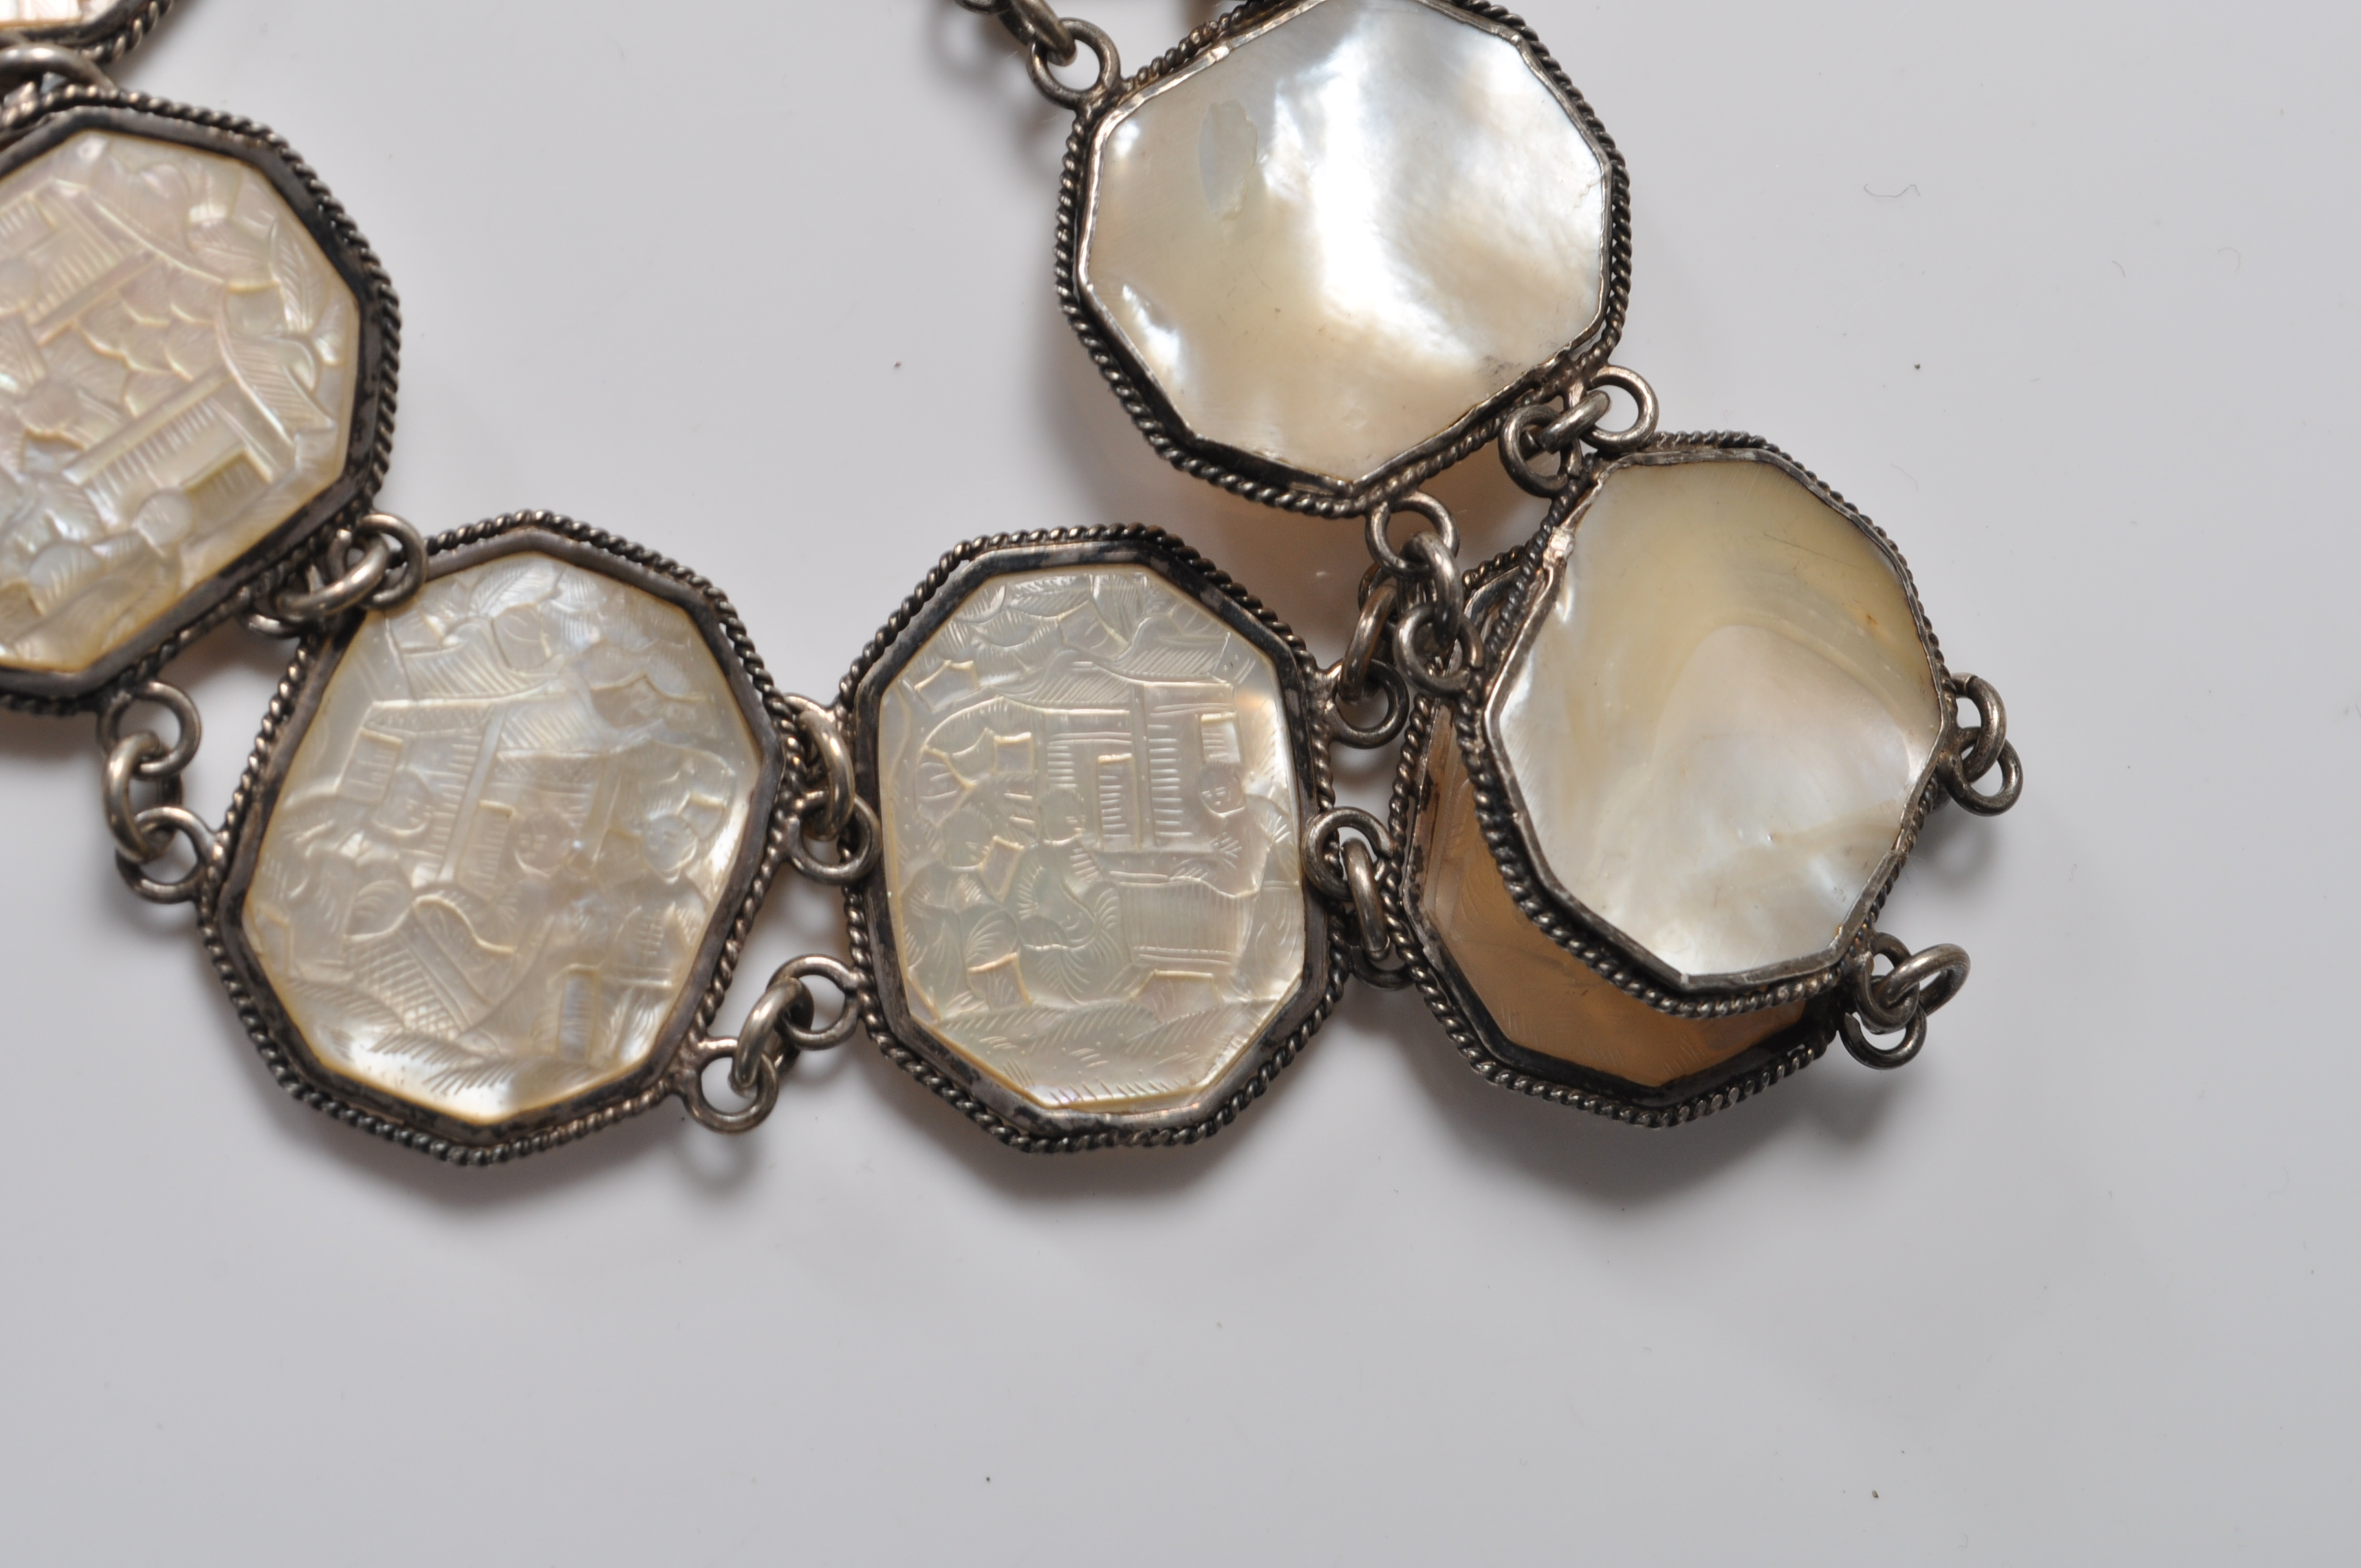 ANTIQUE CHINESE SILVER AND MOTHER OF PEARL BELT - Image 5 of 7